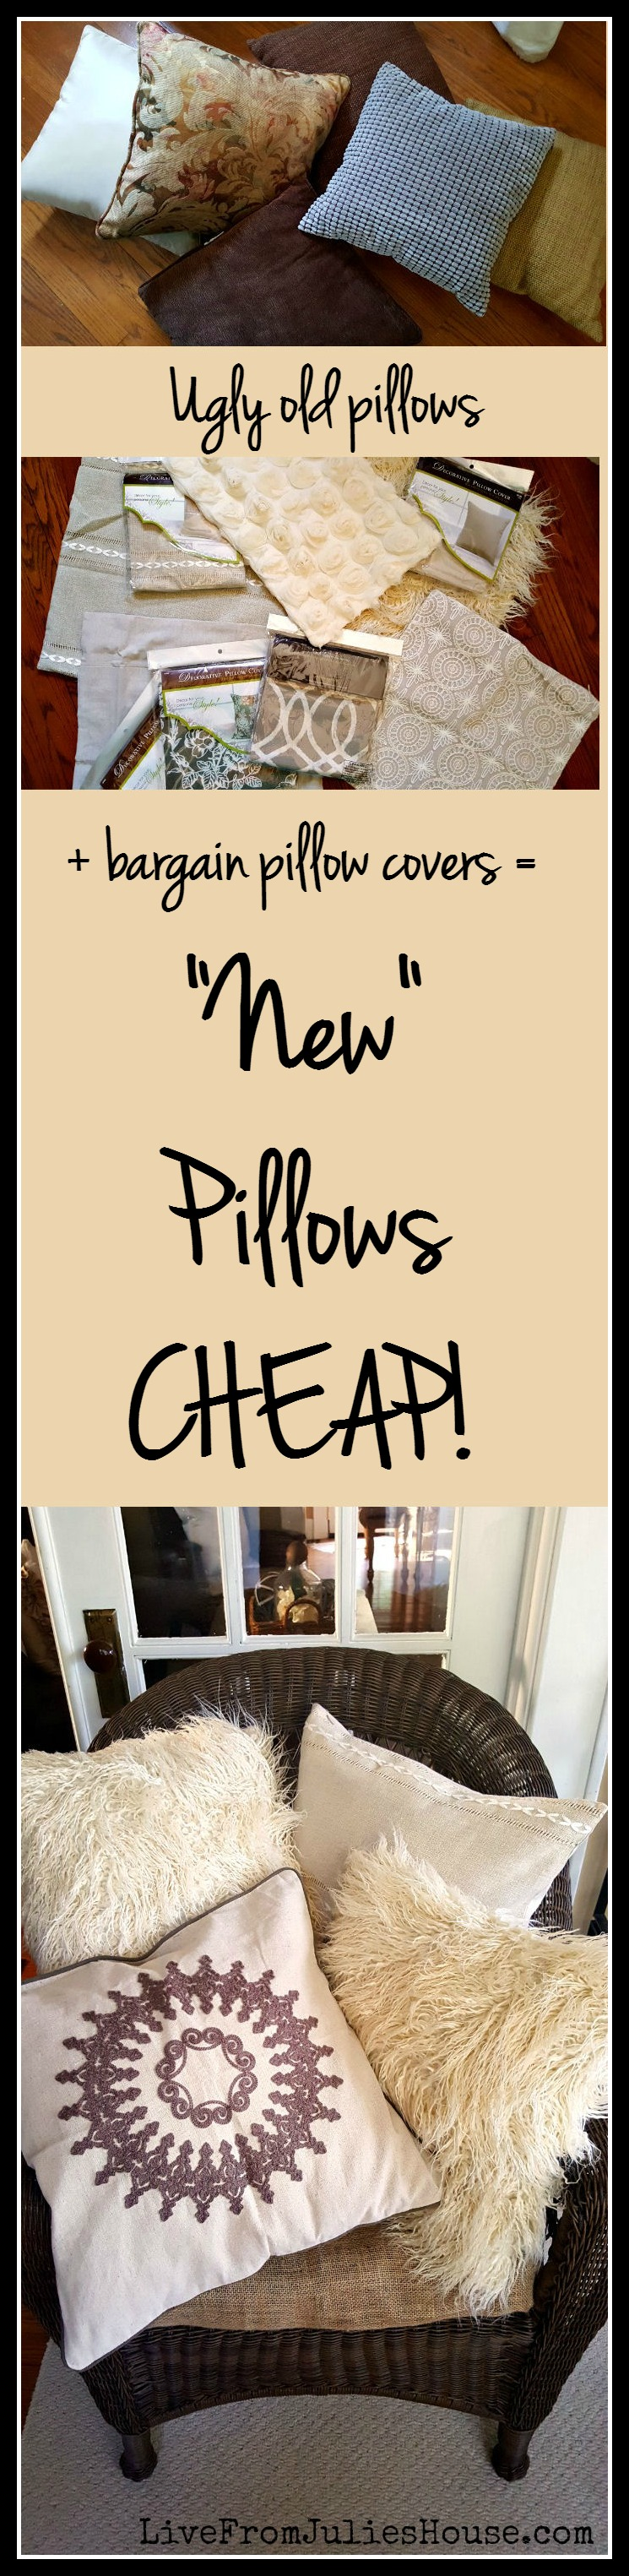 New Throw Pillows - CHEAP! Want to freshen up your throw pillows without spending a ton of cash? Check out Hobby Lobby's awesome pillow covers - some are less than $5!